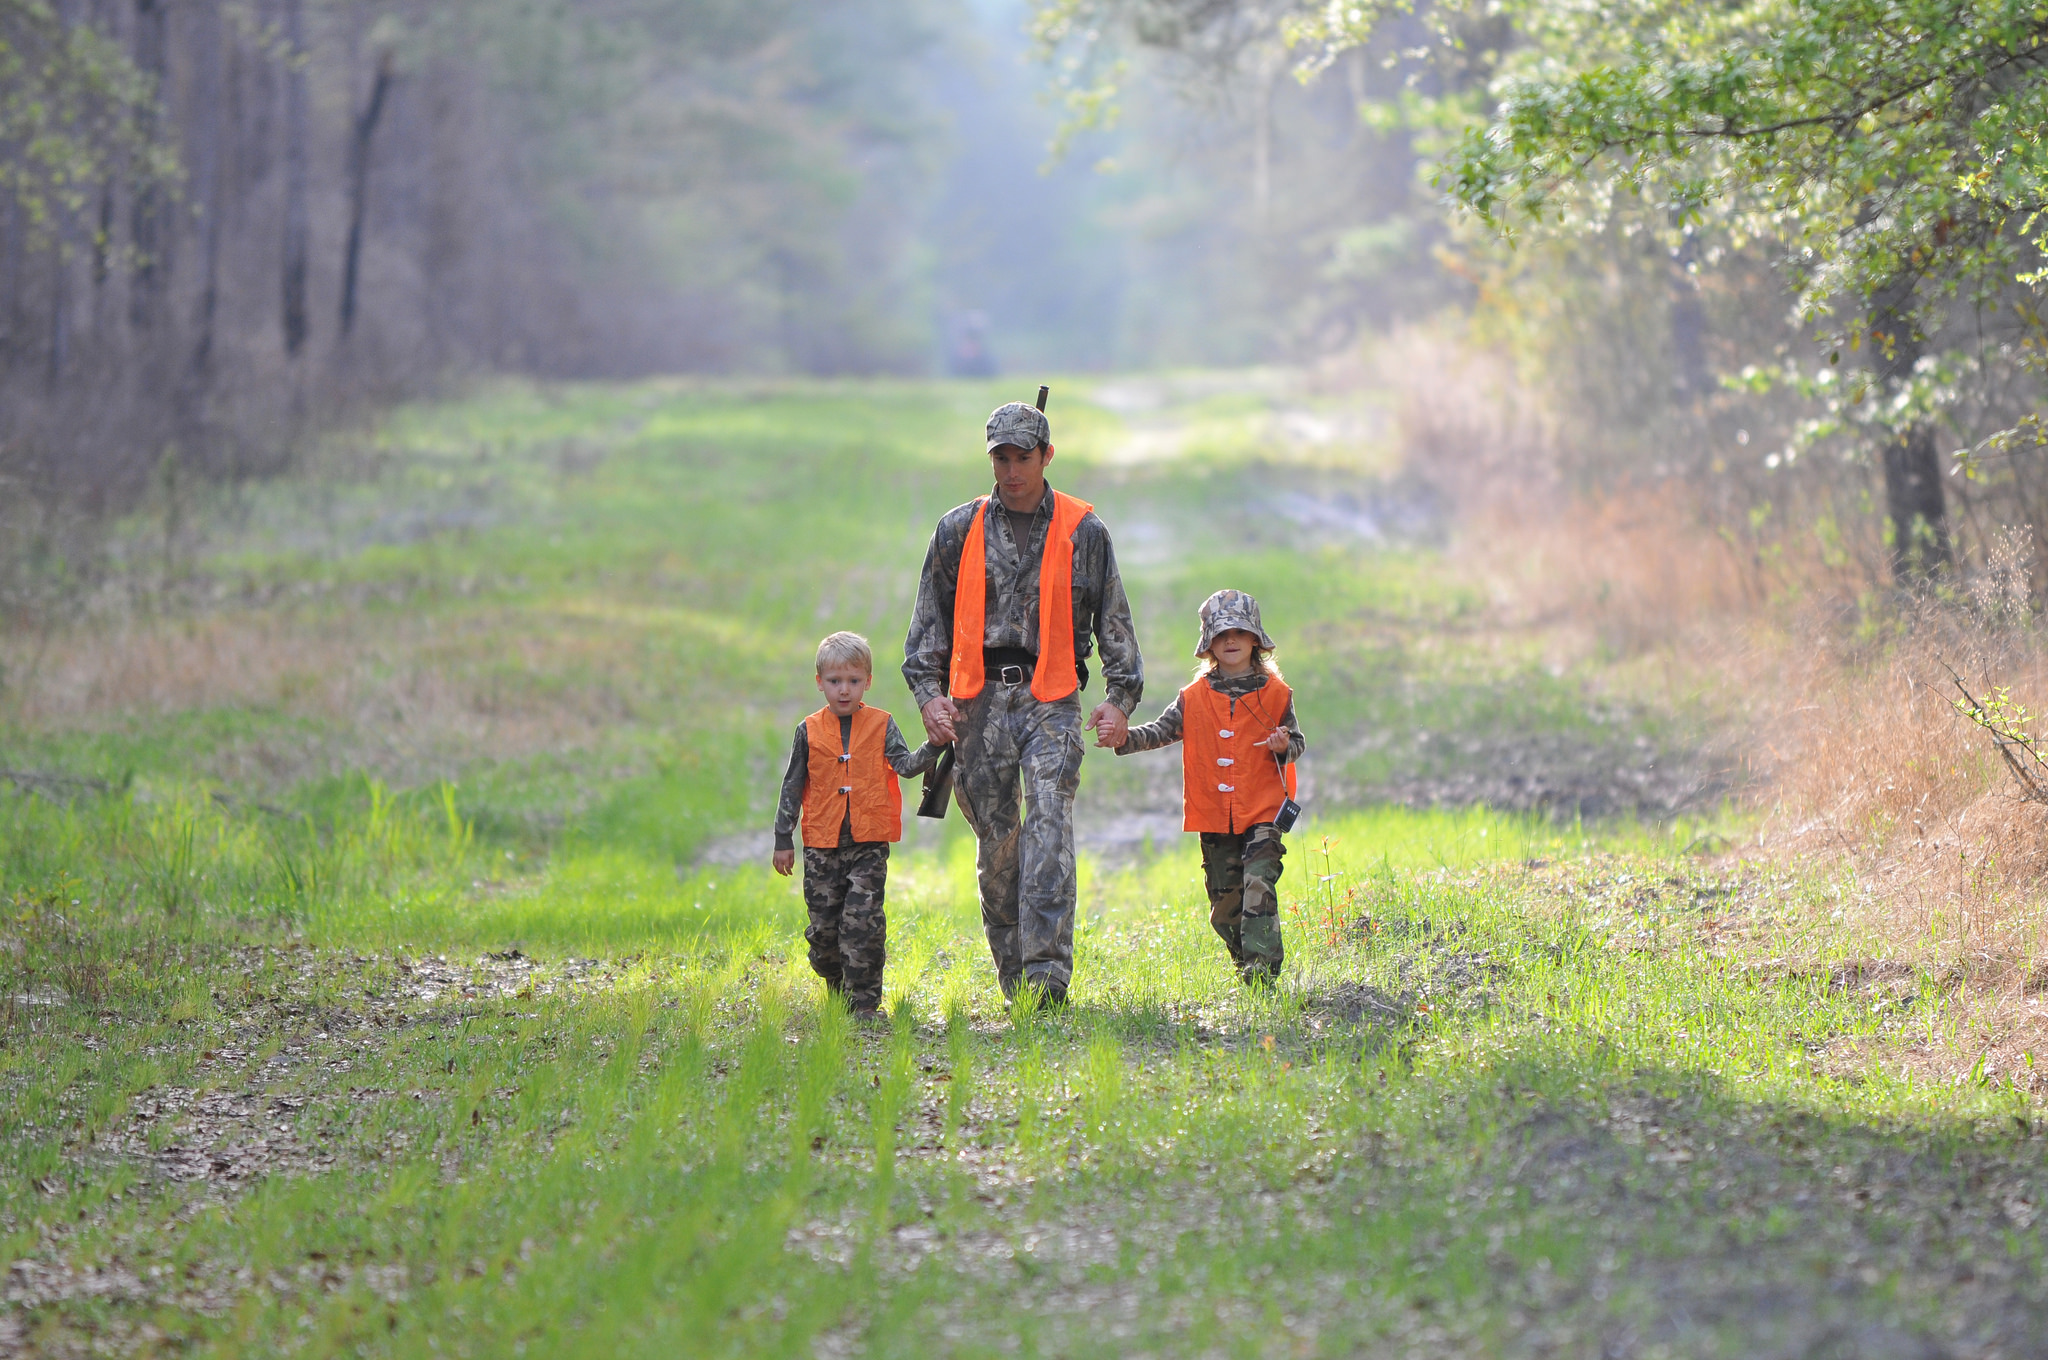 NFA Gun Trust - person walking through grass in a forest, with two children